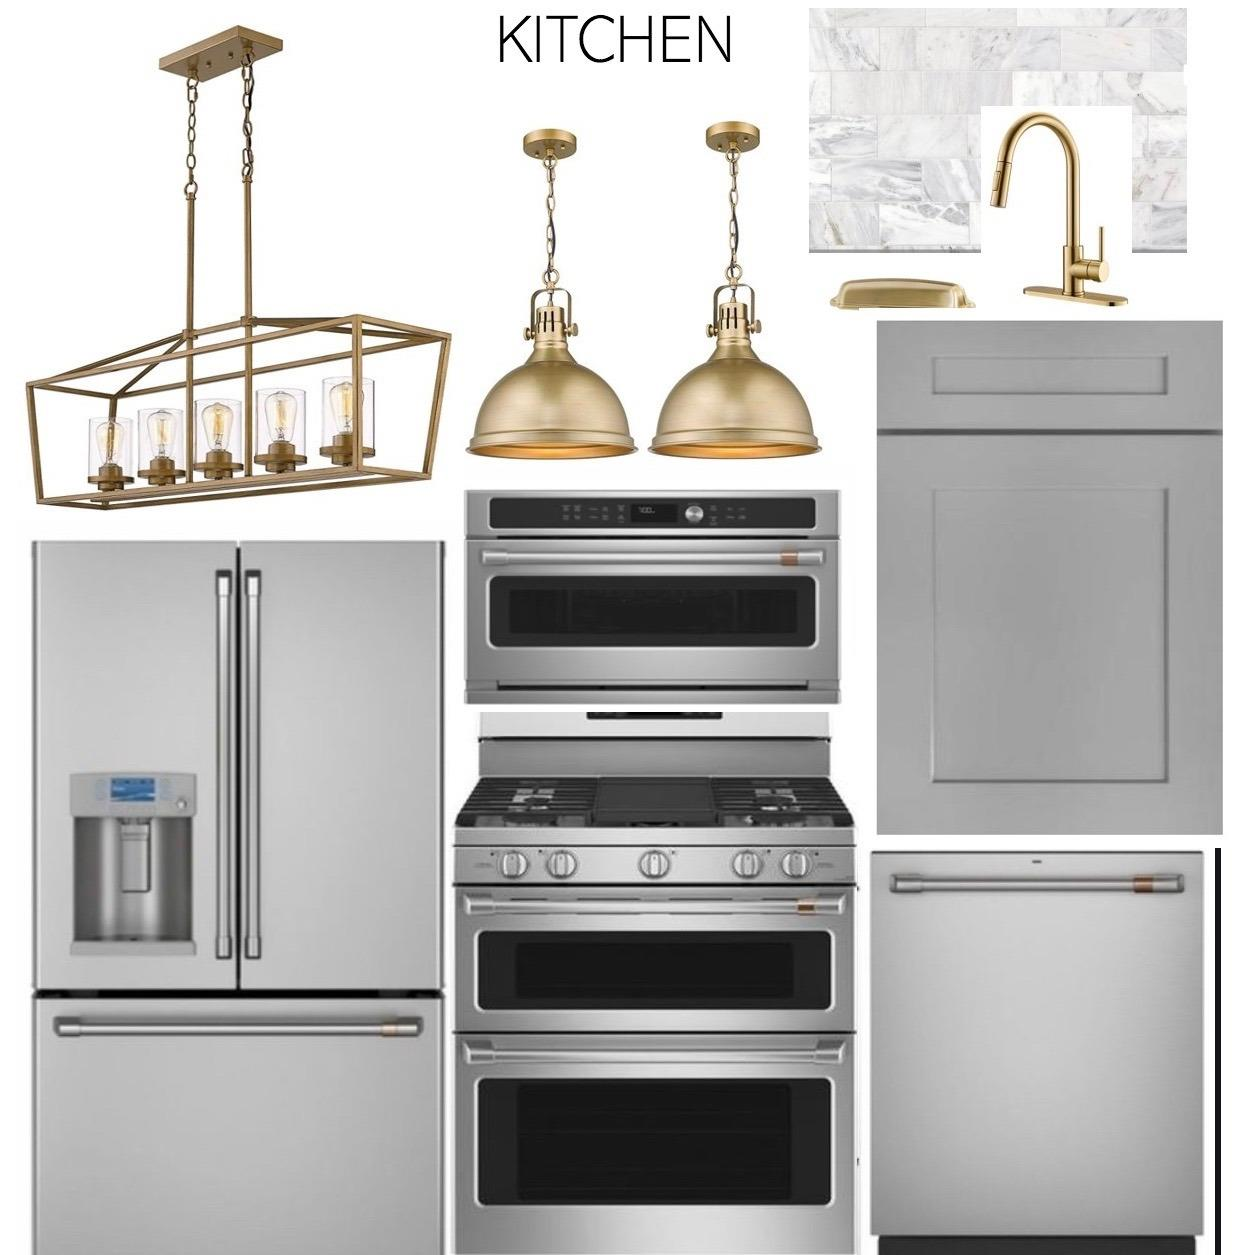 Sample kitchen selection examples.